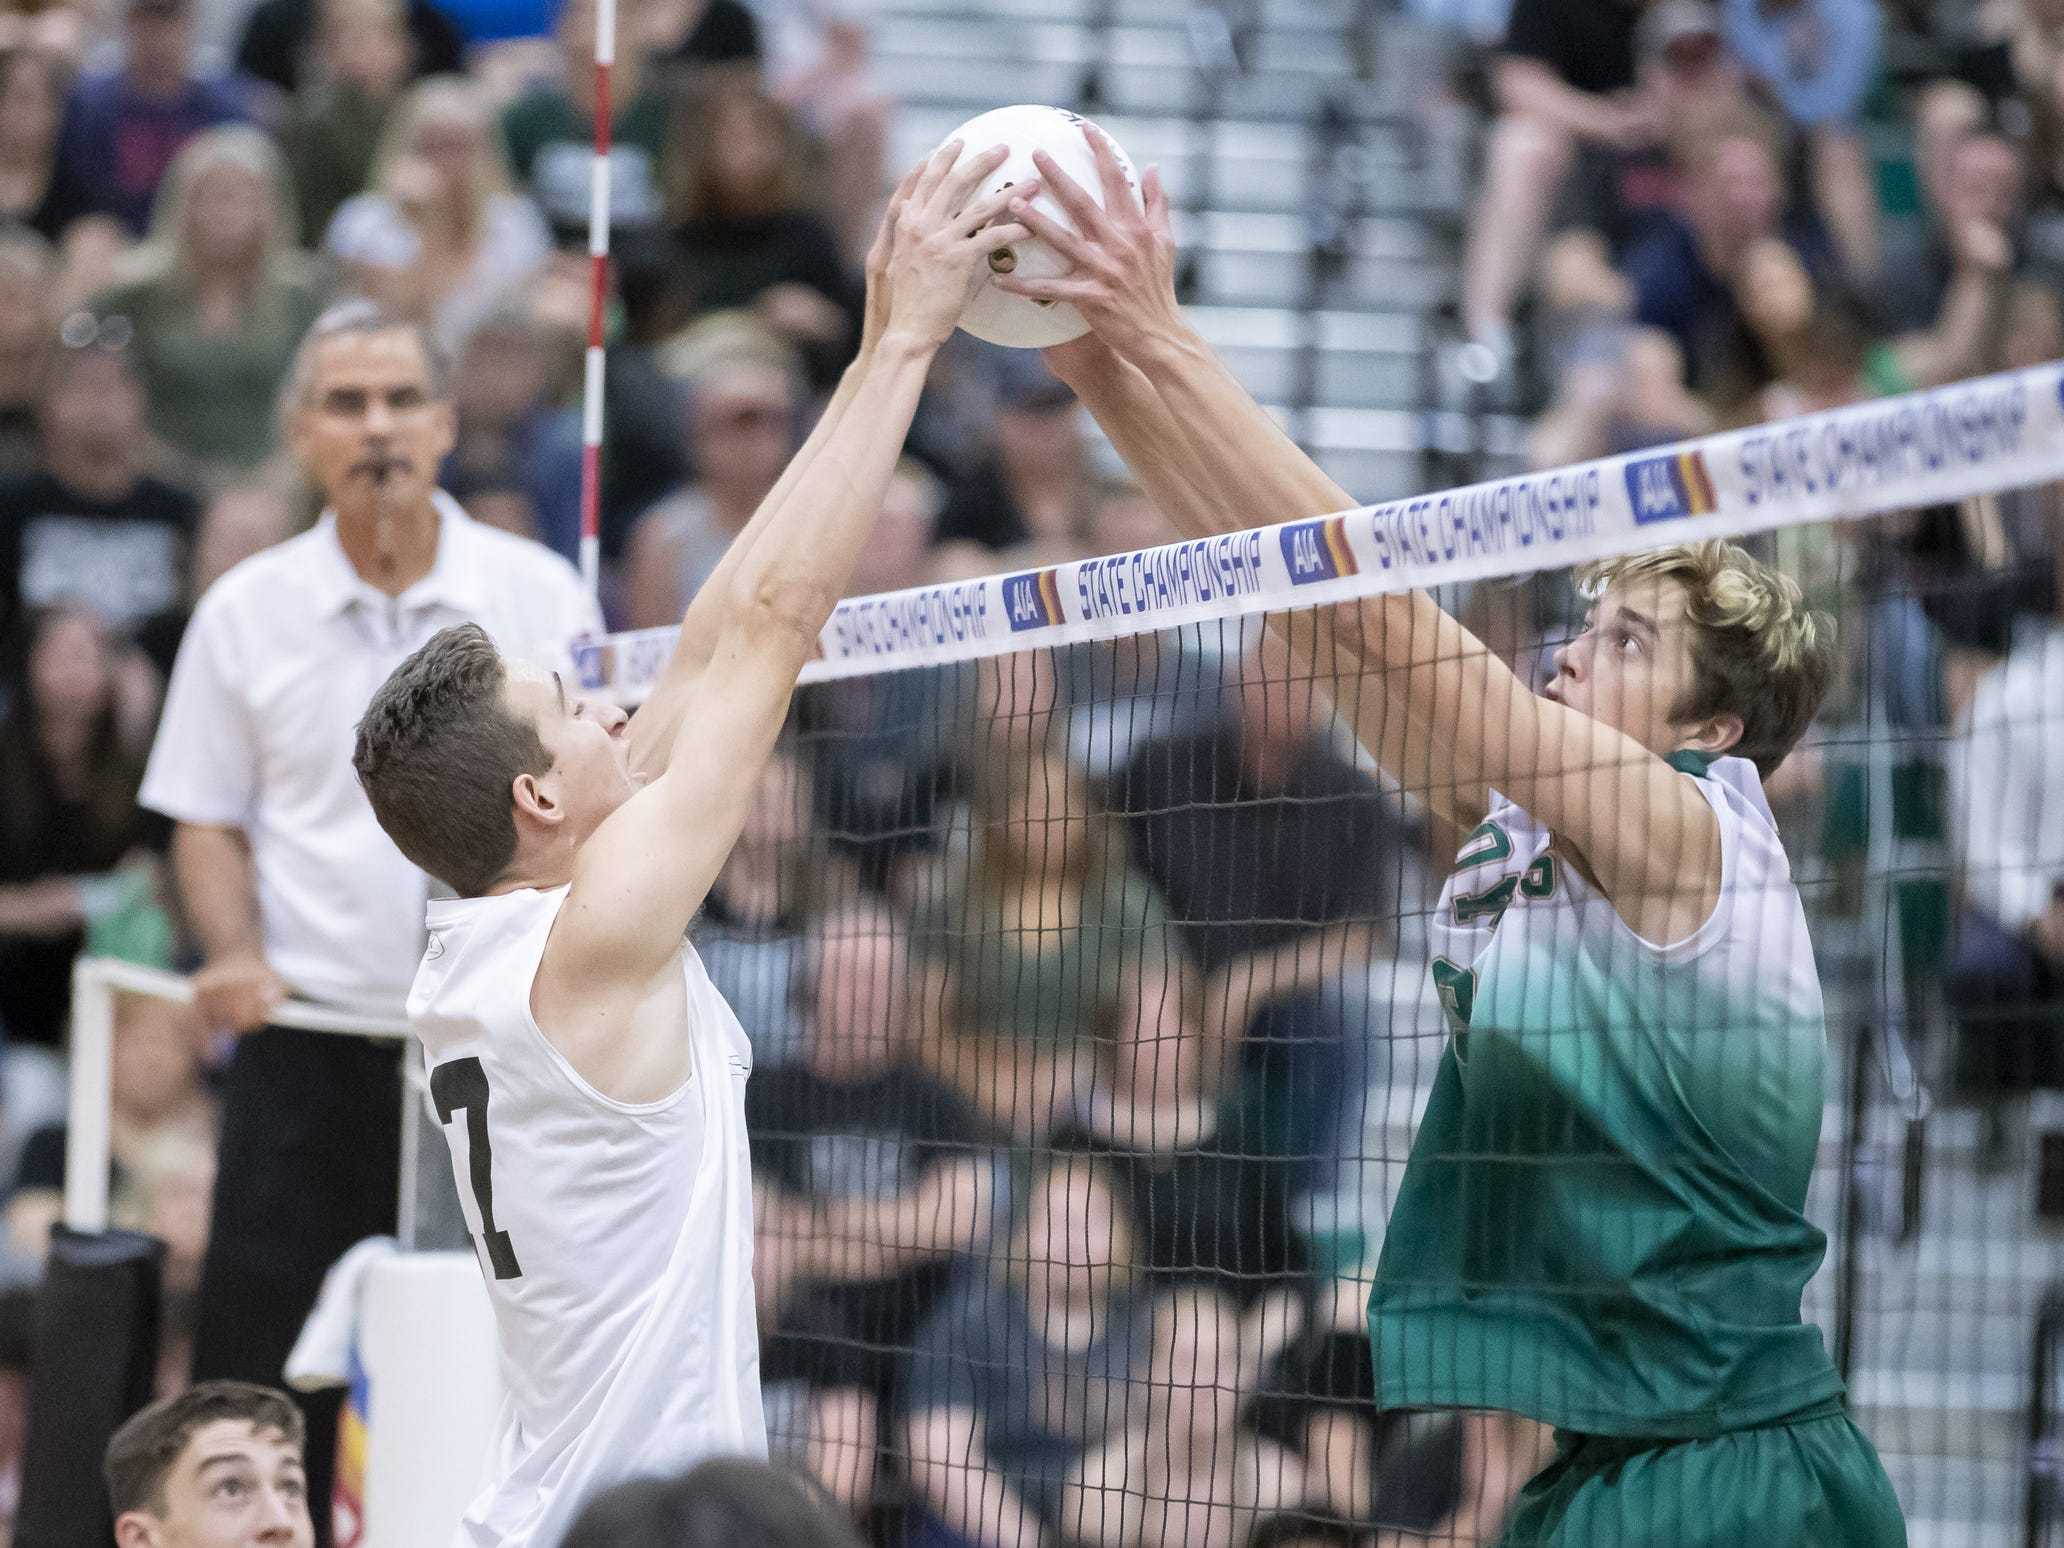 Senior middle blocker Caleb Crook (17) of the Tucson Mountain View Mountain Lions and senior setter Tyler Poulsen (3) of the Campo Verde Coyotes both attempt to set the ball during the 5A Boys Volleyball State Championships at Higley High School on Saturday, May 11, 2019 in Gilbert, Arizona.